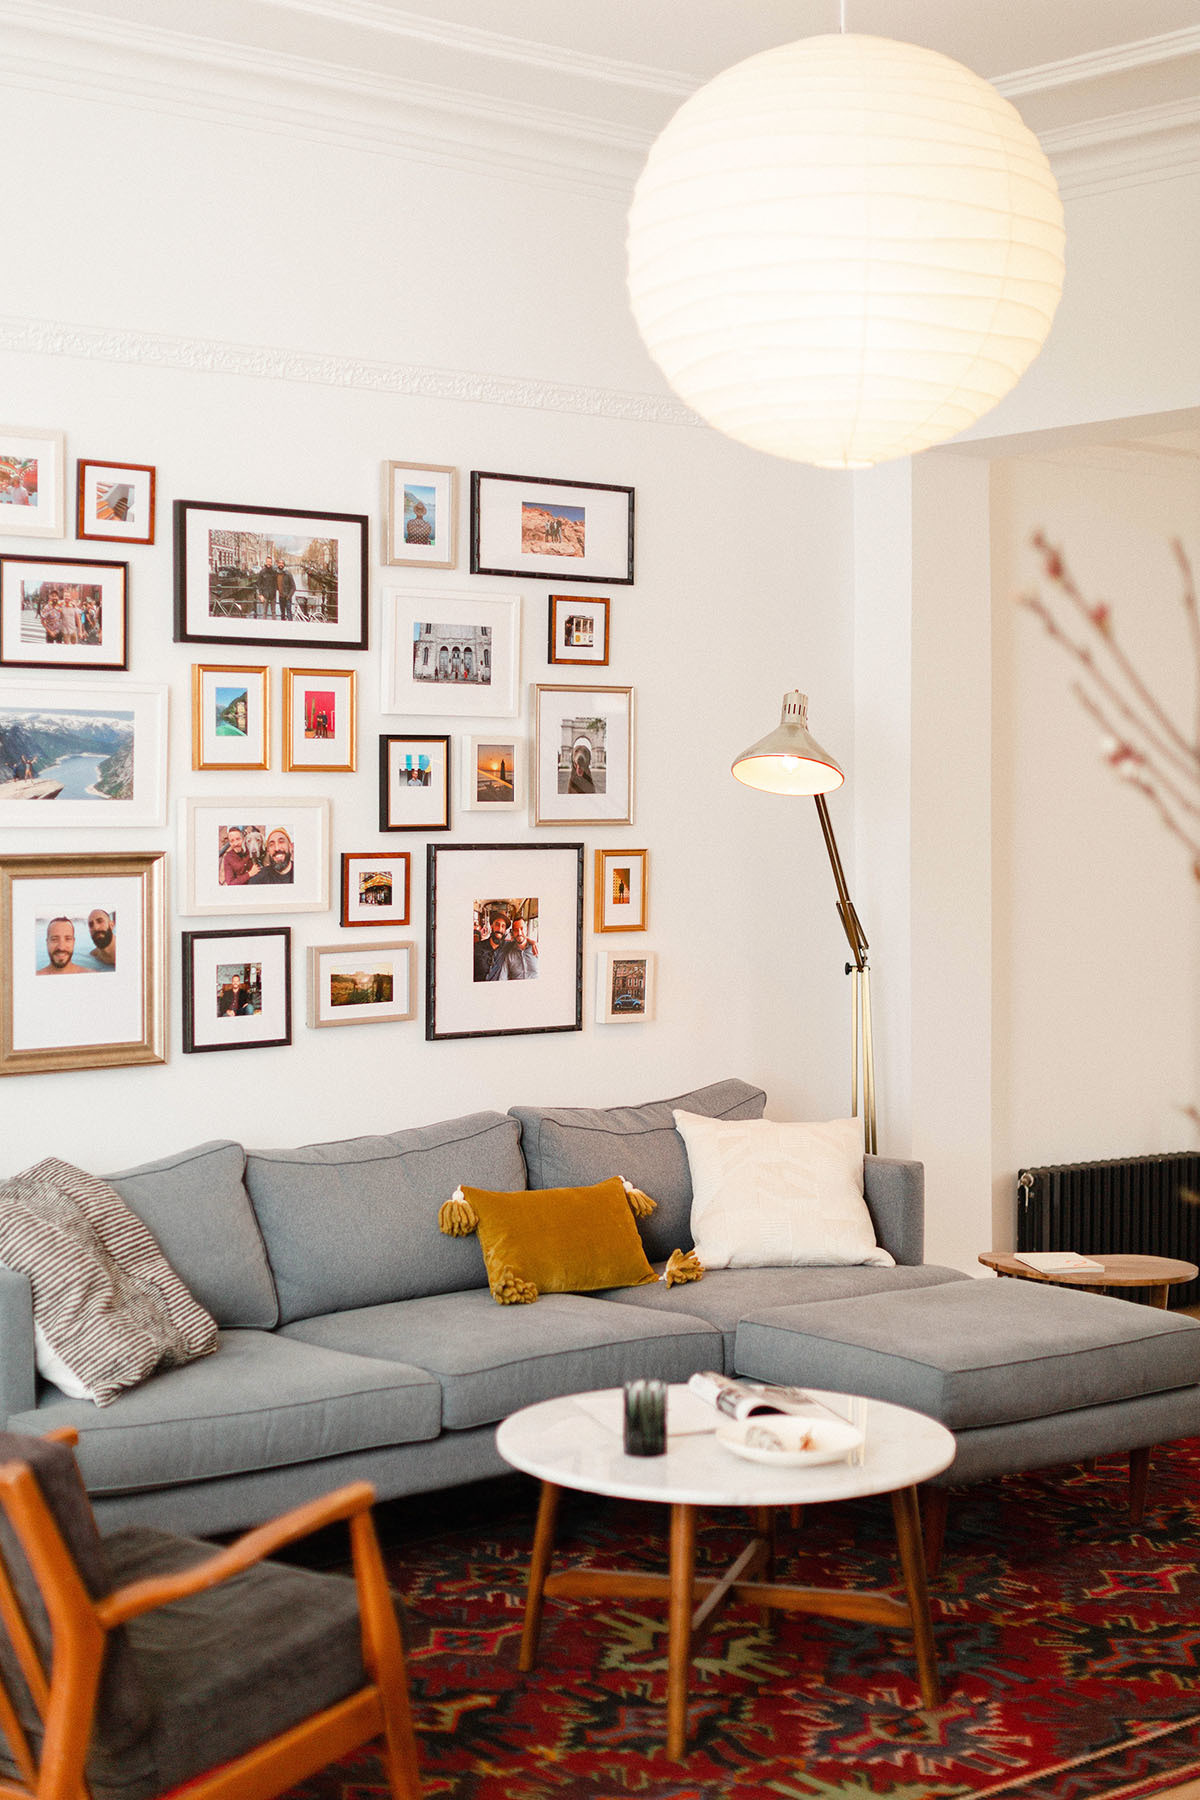 A Framebridge gallery wall brings personality to the duo's reimagined living space. Sherwin-Williams Paint | Joybird Sofa | Vintage Rug | eBay Vintage Floor Lamp | Etsy Vintage Armchair | Hayneedle Coffee Table | eBay Vintage Lamp | Urban Outfitters Accent Table | Noguchi Pendant Light.